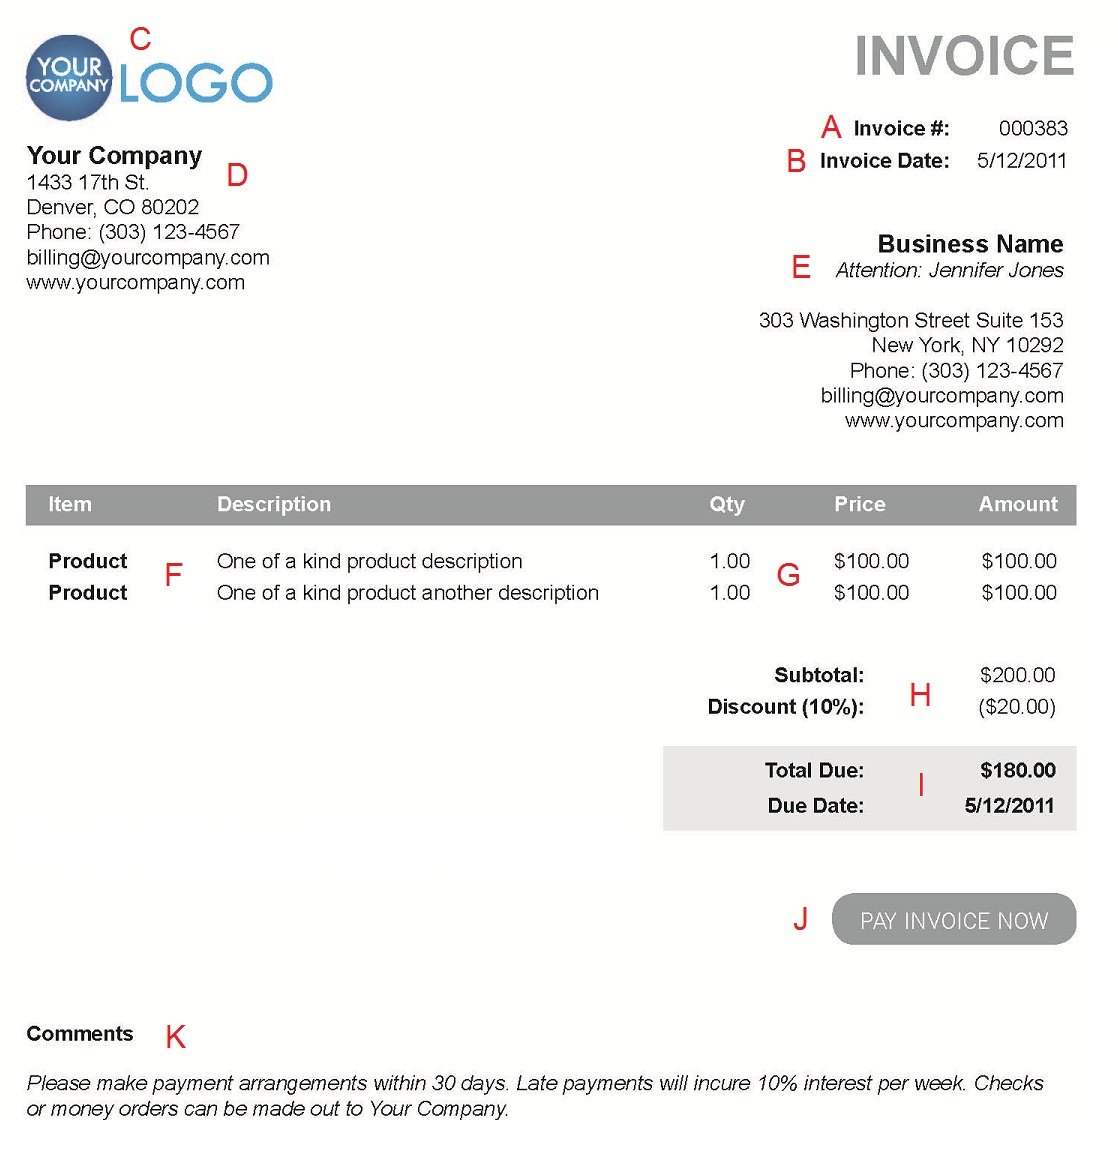 Floobydustus  Pleasant The  Different Sections Of An Electronic Payment Invoice With Lovable A  With Enchanting Free Invoice Templates Word Also Invoice Template Microsoft Office In Addition Sample Independent Contractor Invoice And Dealer Invoice Price Definition As Well As Request For Invoice Additionally My Invoices Software From Paysimplecom With Floobydustus  Lovable The  Different Sections Of An Electronic Payment Invoice With Enchanting A  And Pleasant Free Invoice Templates Word Also Invoice Template Microsoft Office In Addition Sample Independent Contractor Invoice From Paysimplecom